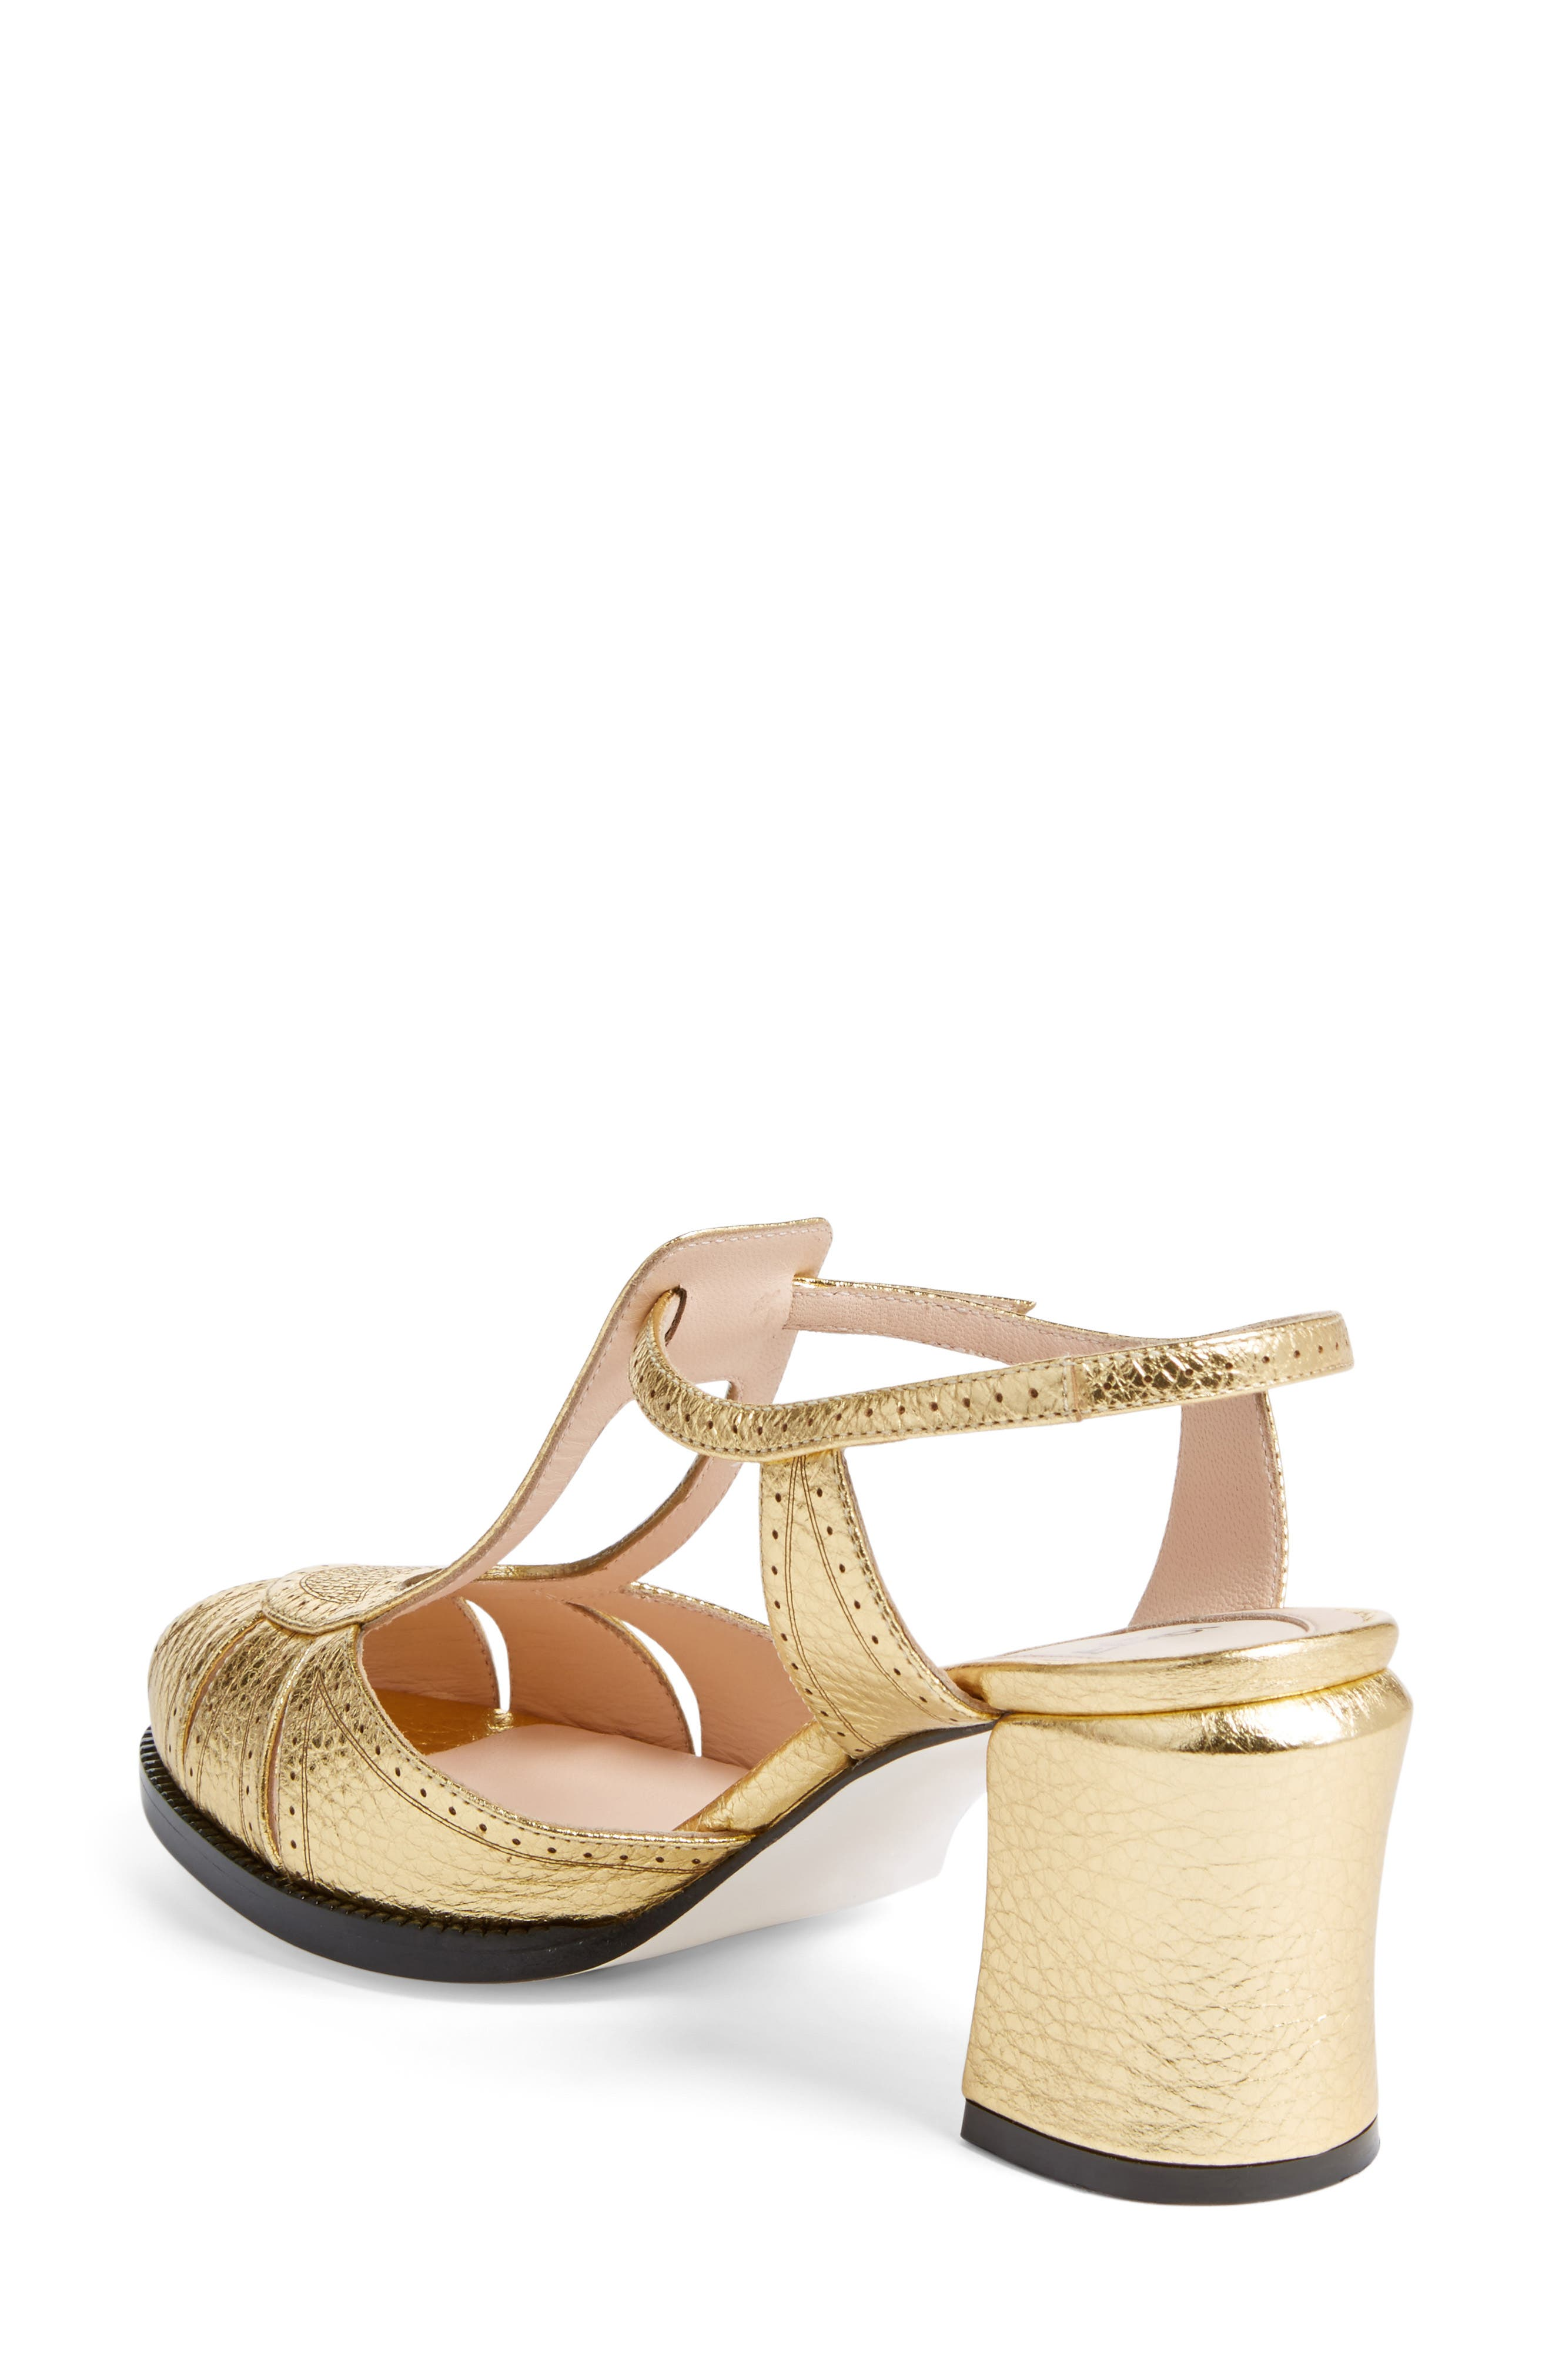 Chameleon Leather Sandal,                             Alternate thumbnail 2, color,                             710